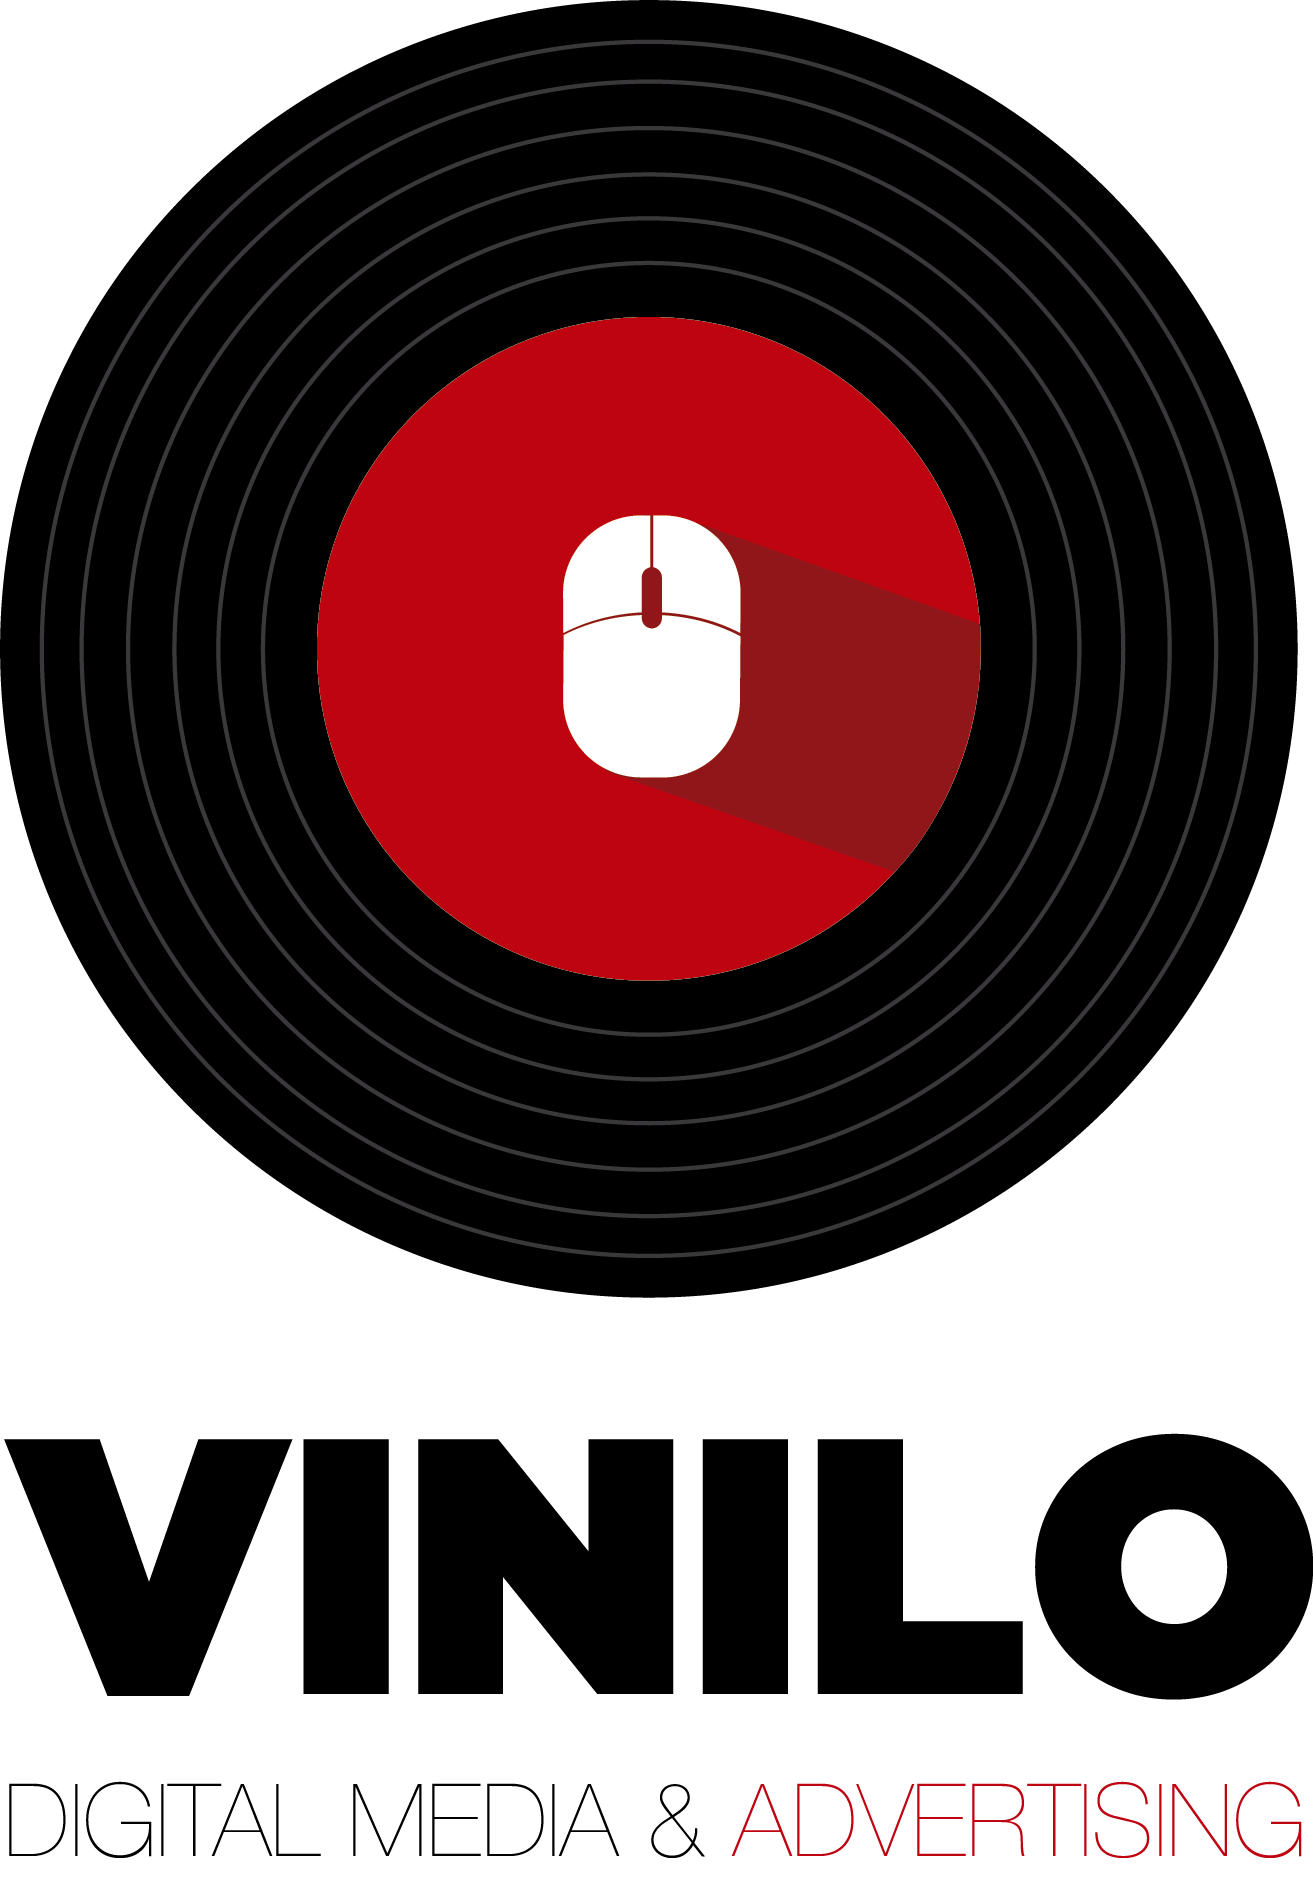 Vinilo / Digital Media & Advertising